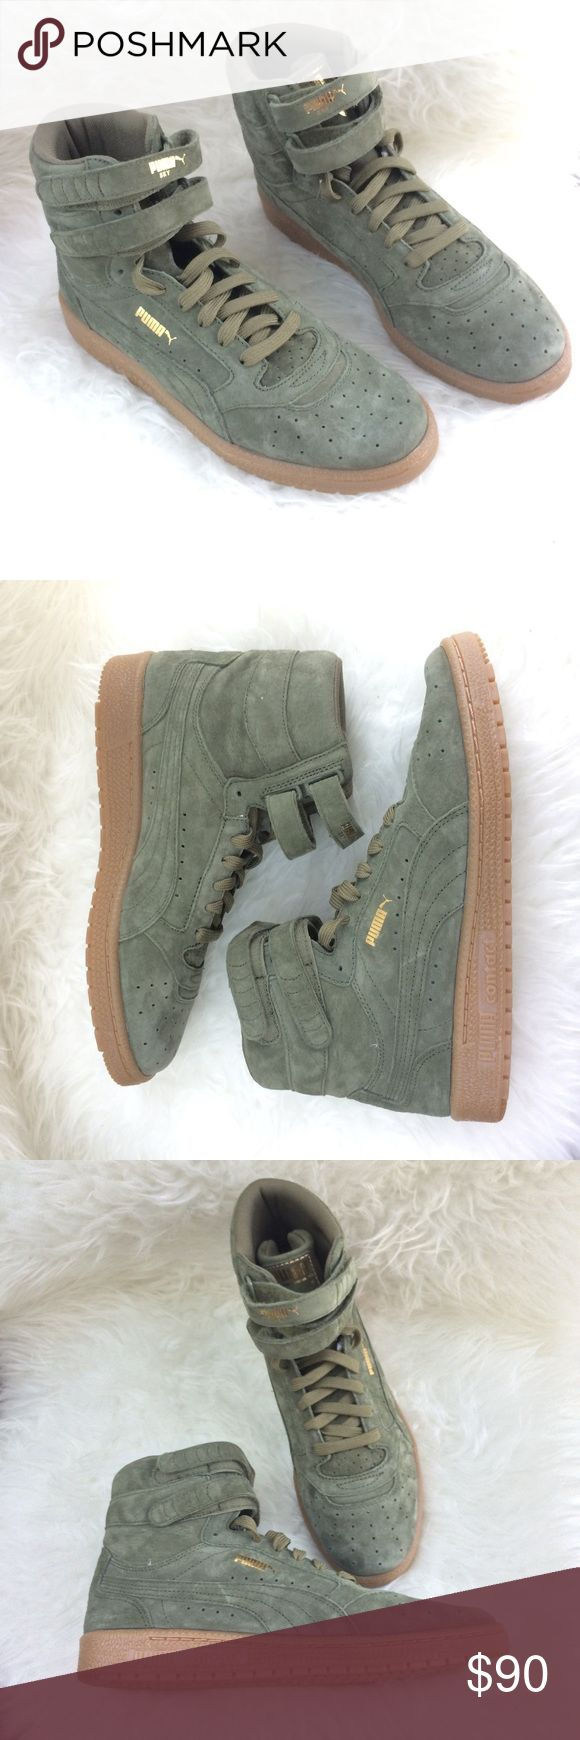 ⚡️PUMA Sky II Hi - Women's Burnt Olive/Gold⚡️ Size: 8 & 9 . Brand new, without box. Get these now!! First introduced in 1980 and played on the court by all-stars, the Sky II Hi was PUMA's original basketball shoe. This re-issue brings the OG silhouette to life in all-over nubuck. -Nubuck upper -Lace closure for a snug fit -Dual hook-and-loop straps for a signature look -Rubber outsole for grip -PUMA Formstrip at both sides -PUMA Logo Label at tongue -PUMA Cat Logo at heel Puma Shoes Sneakers